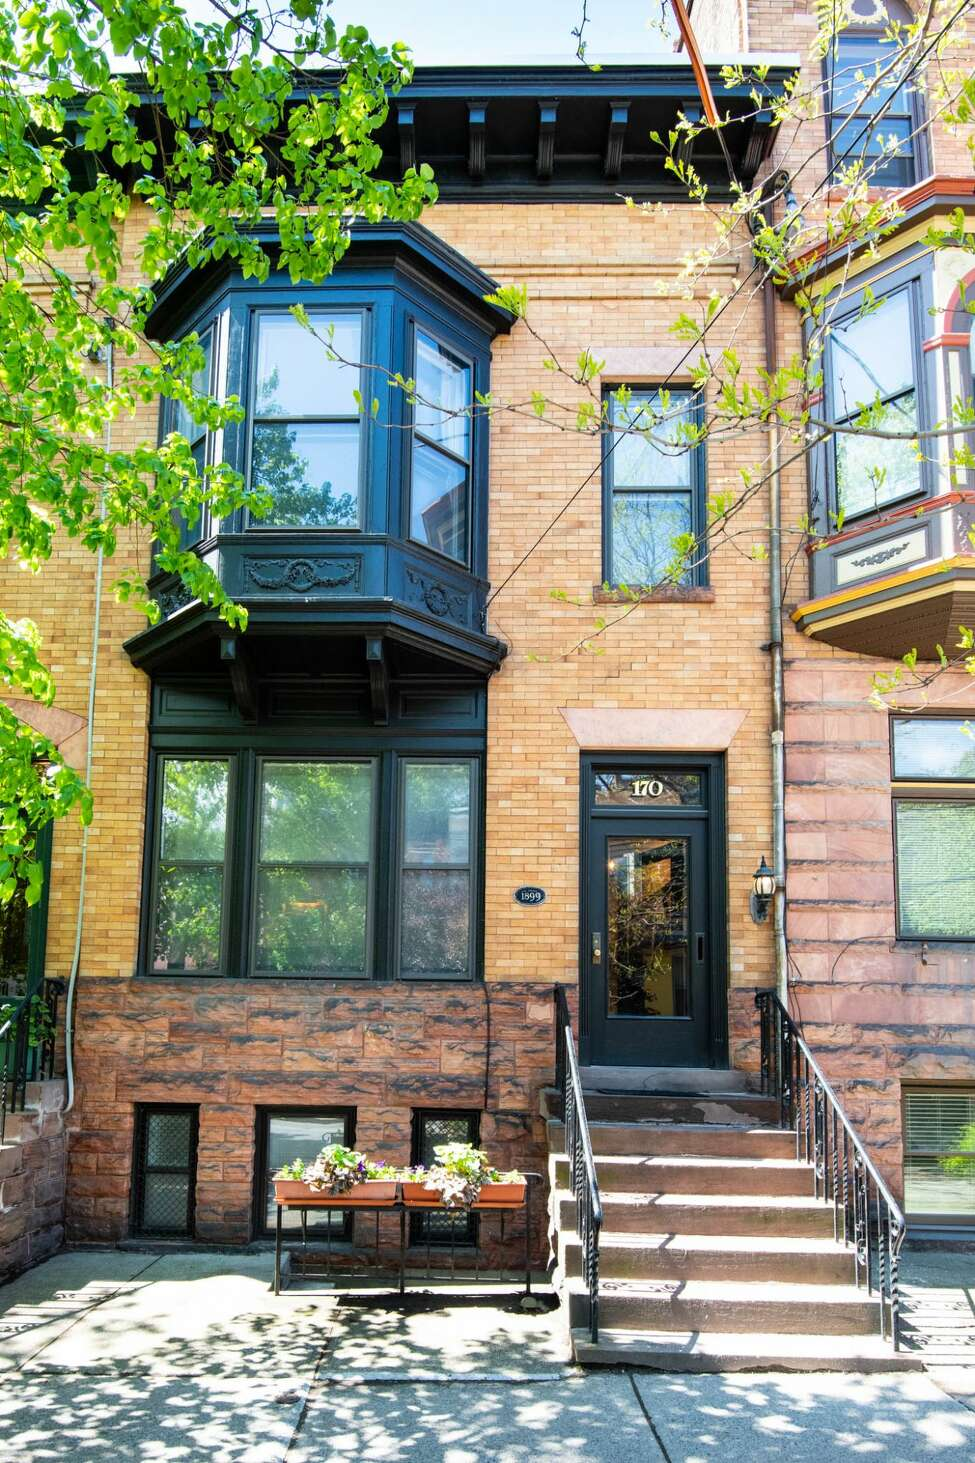 House of the Week: 170 Chestnut St., Albany | Realtor: Alexander Monticello of Monticello Real Estate | Discuss: Talk about this house